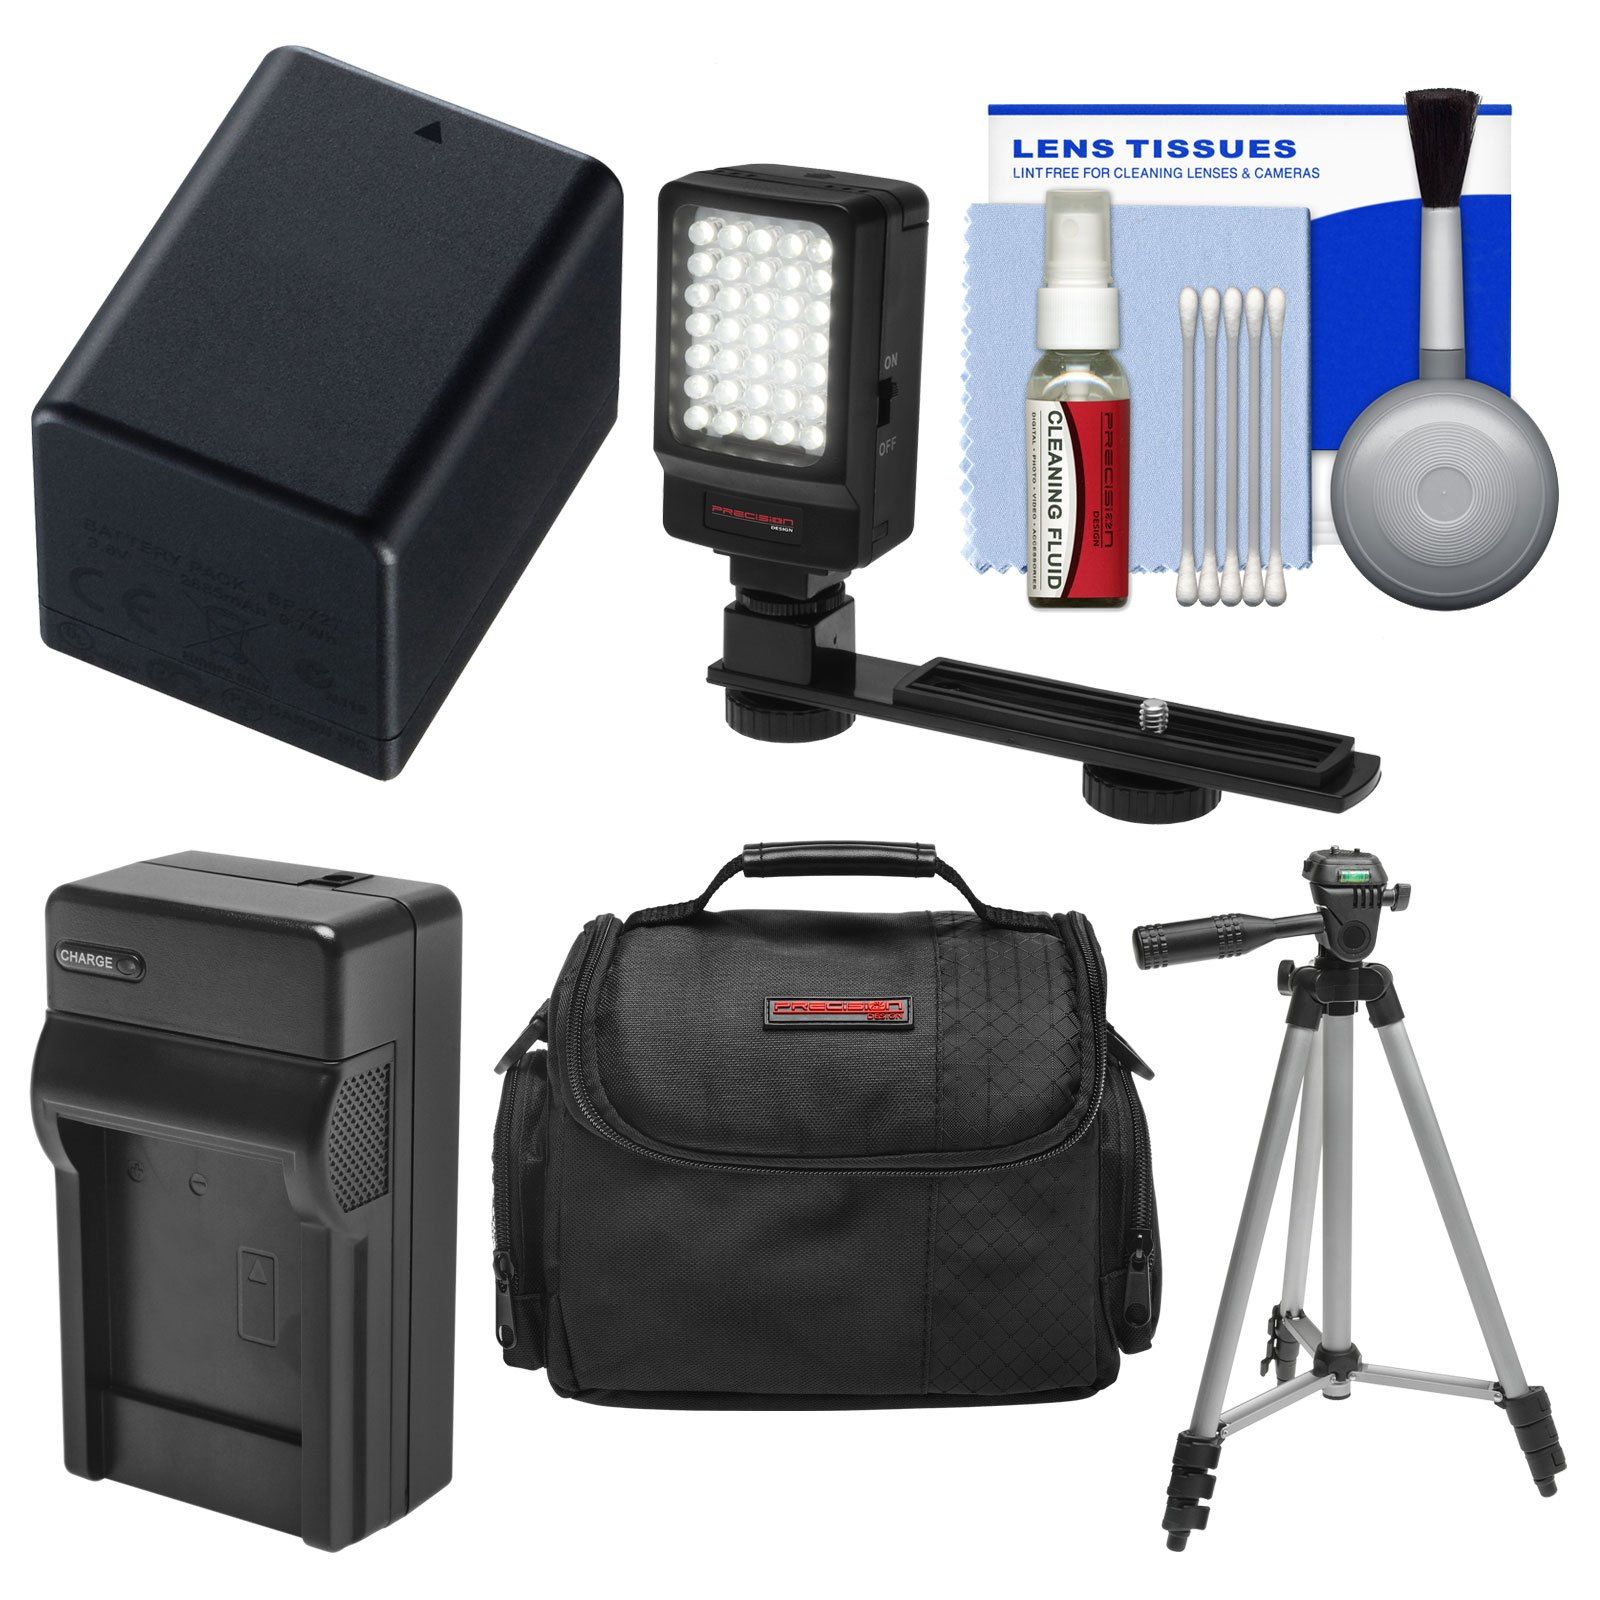 Essentials Bundle for Canon Vixia HF R70, R700, R72, R80, R800, R82 Camcorder with Case + LED Light + BP-727 Battery & Charger + Tripod + Cleaning Kit by Precision Design